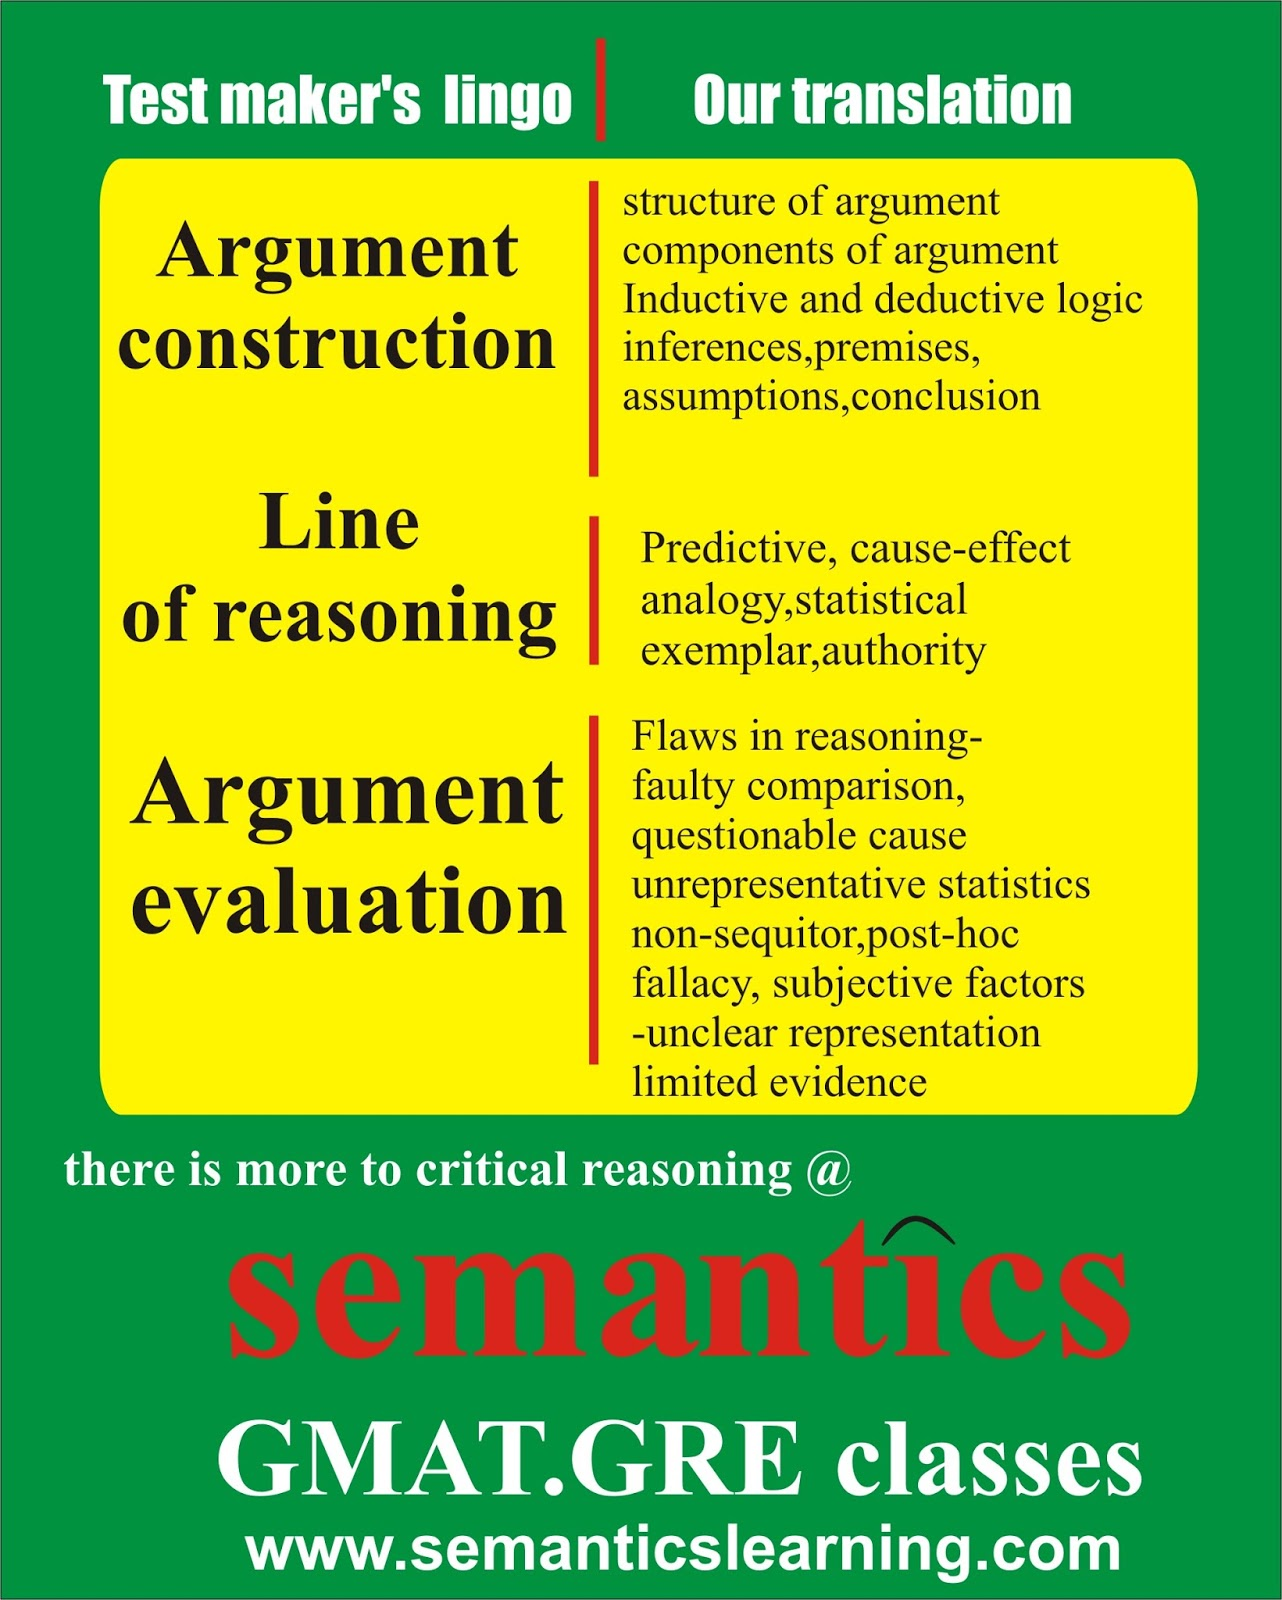 let's GMAT: Critical reasoning jargon and its meaning